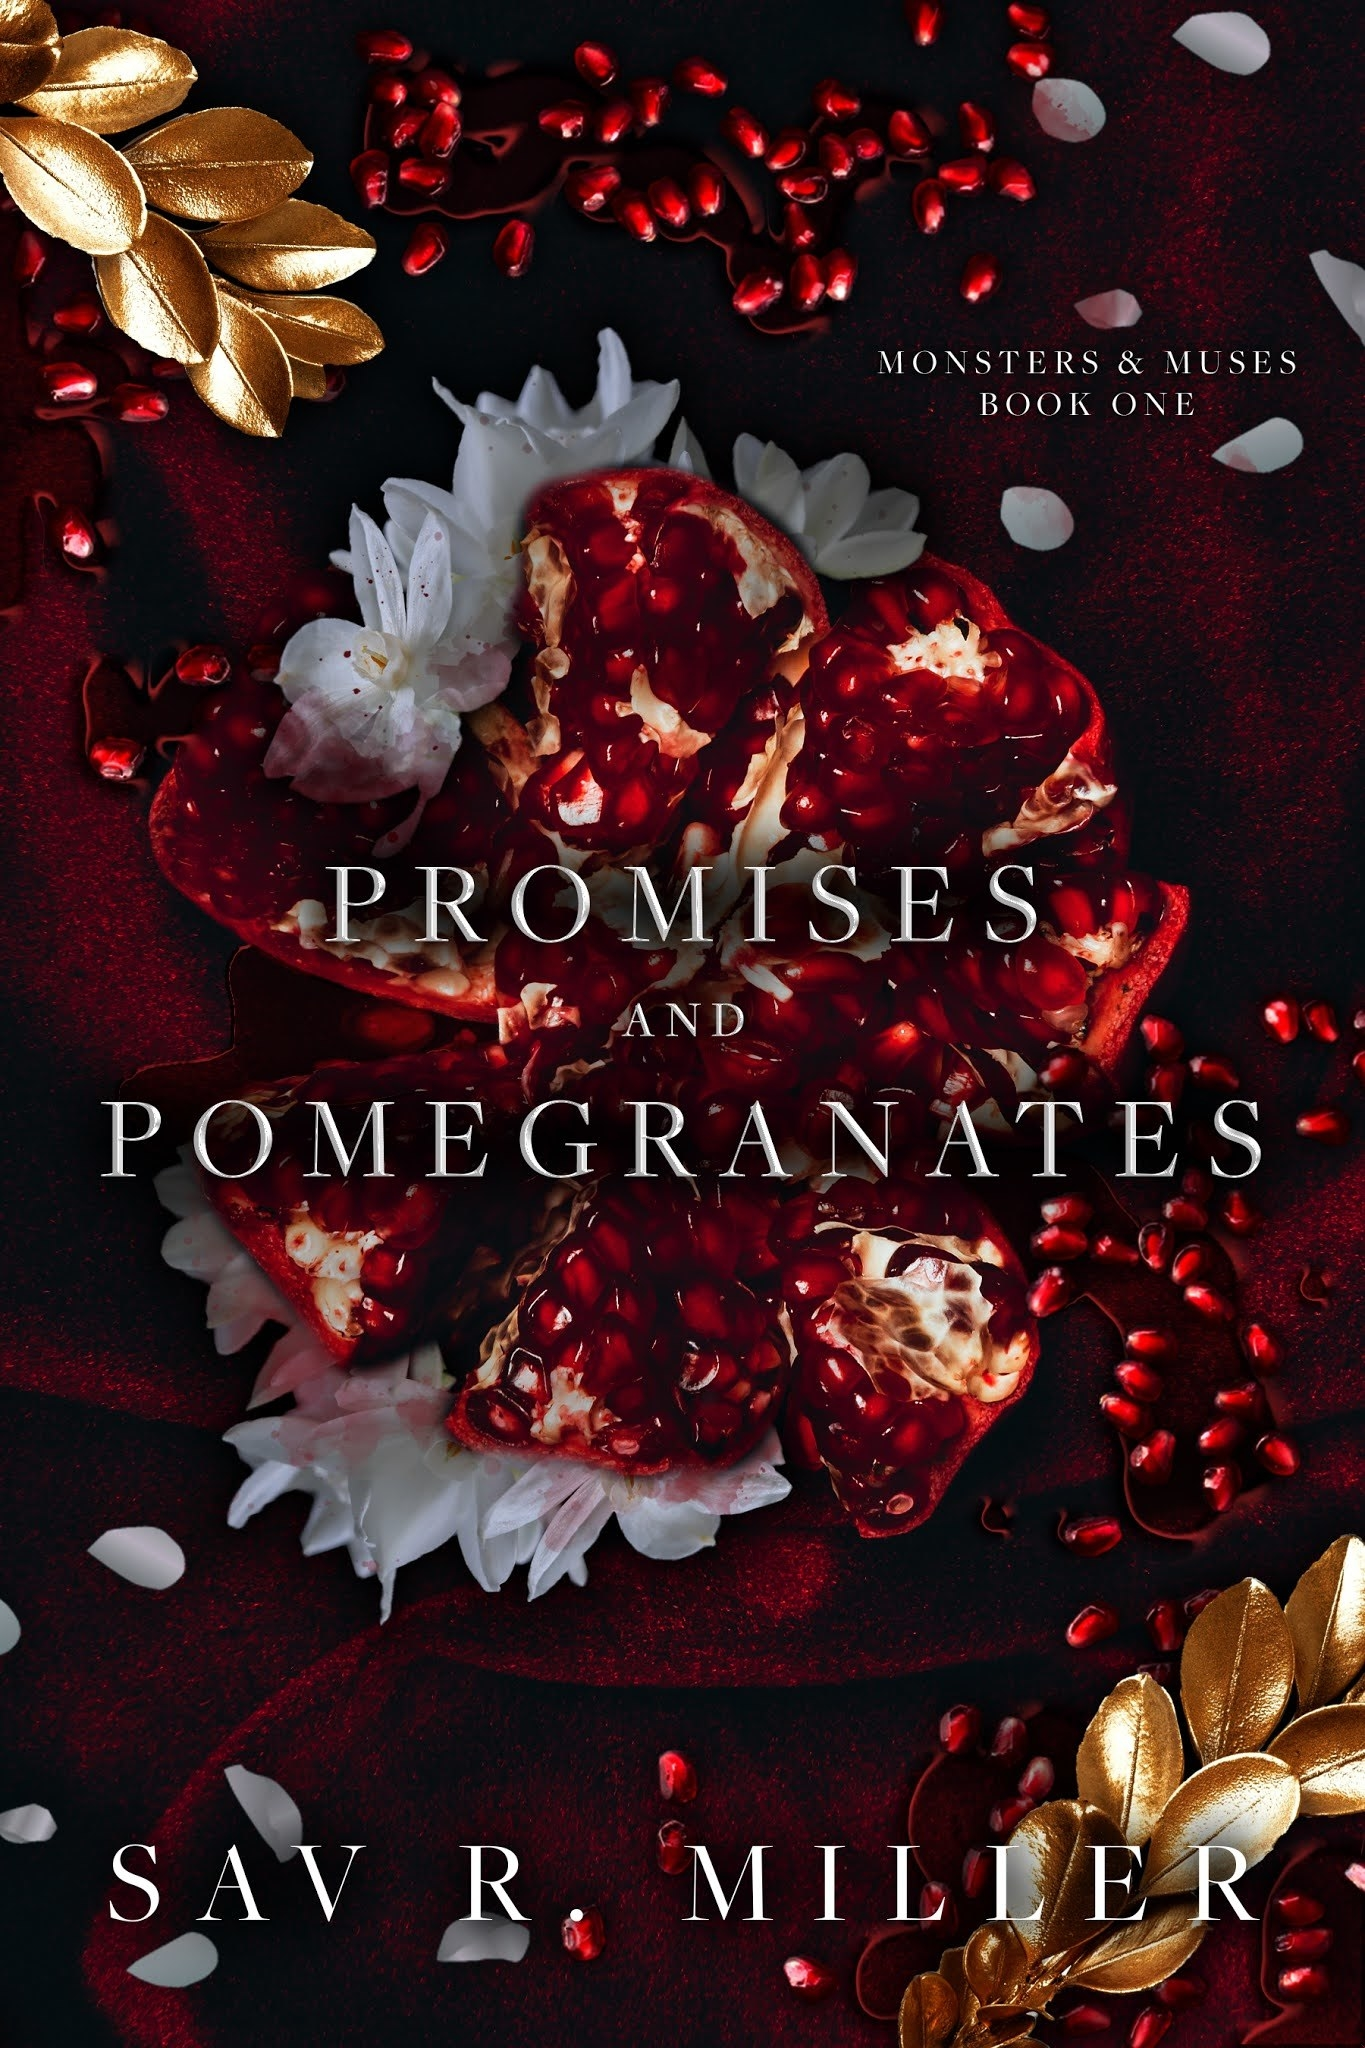 Promises and Pomegranates cover. Book by Sav R. Miller.